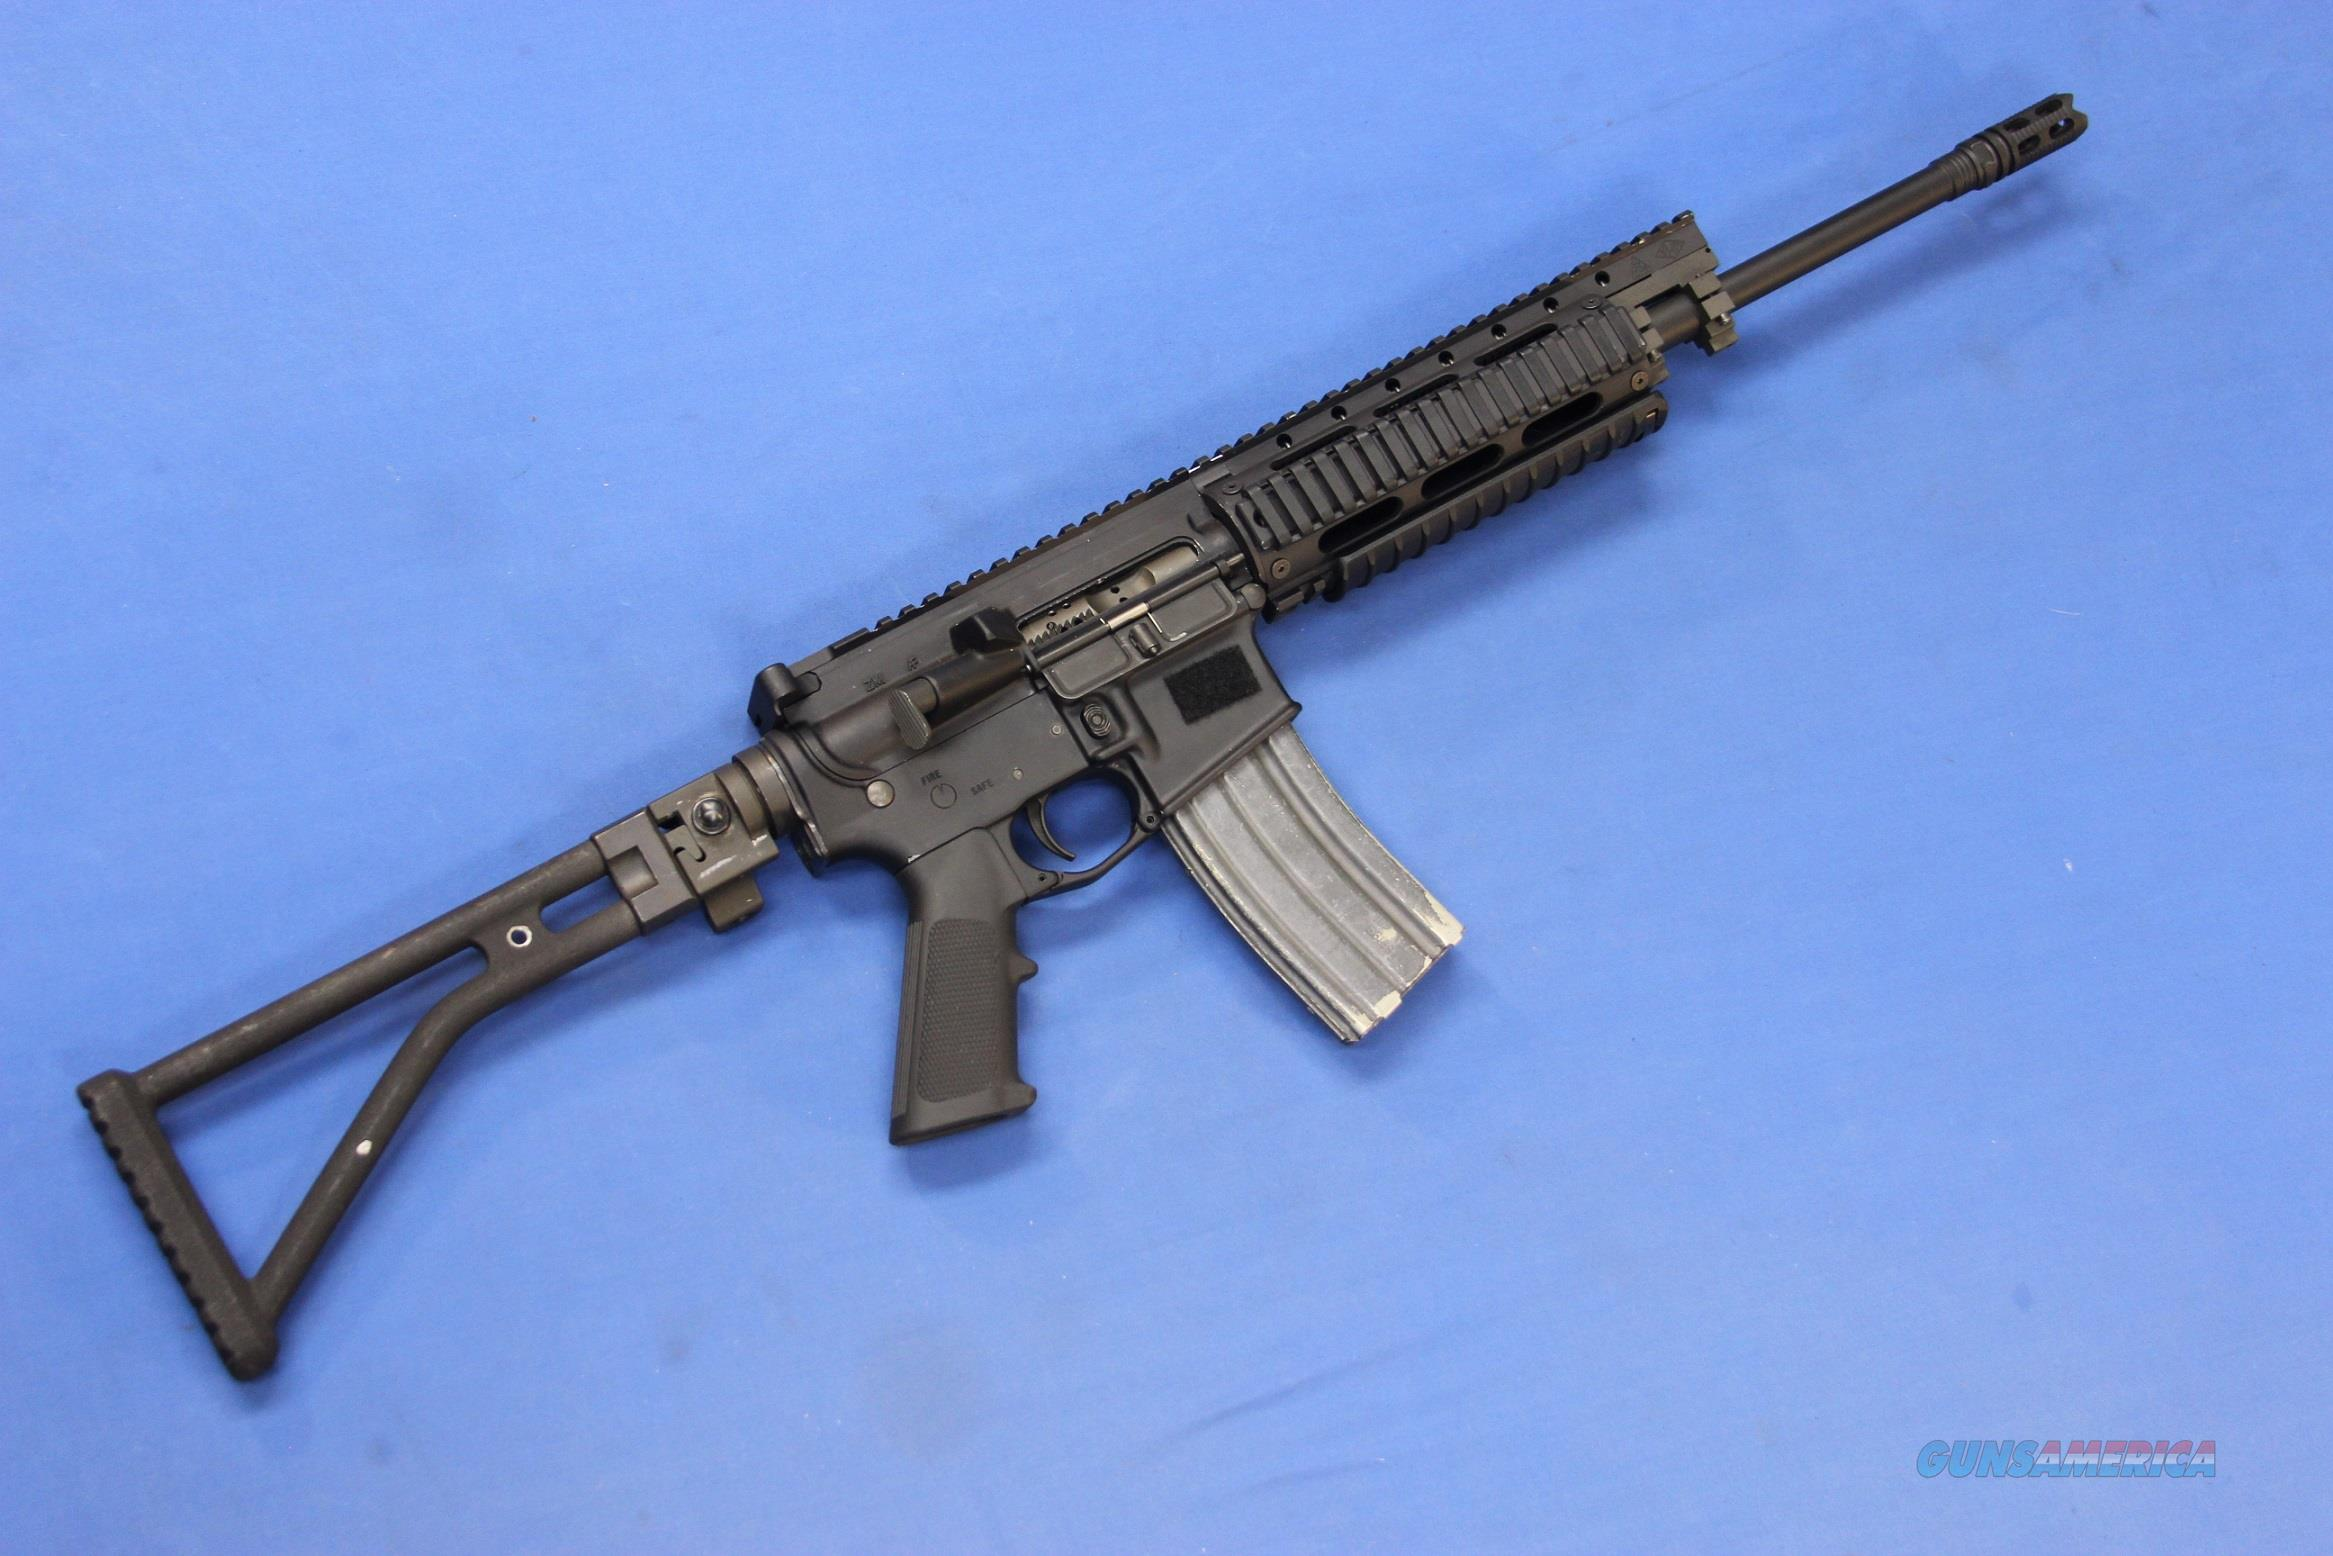 Z-M WEAPONS LR-300 FOLDING STOCK AR-15 5.56 NATO .223 REM  Guns > Rifles > AR-15 Rifles - Small Manufacturers > Complete Rifle